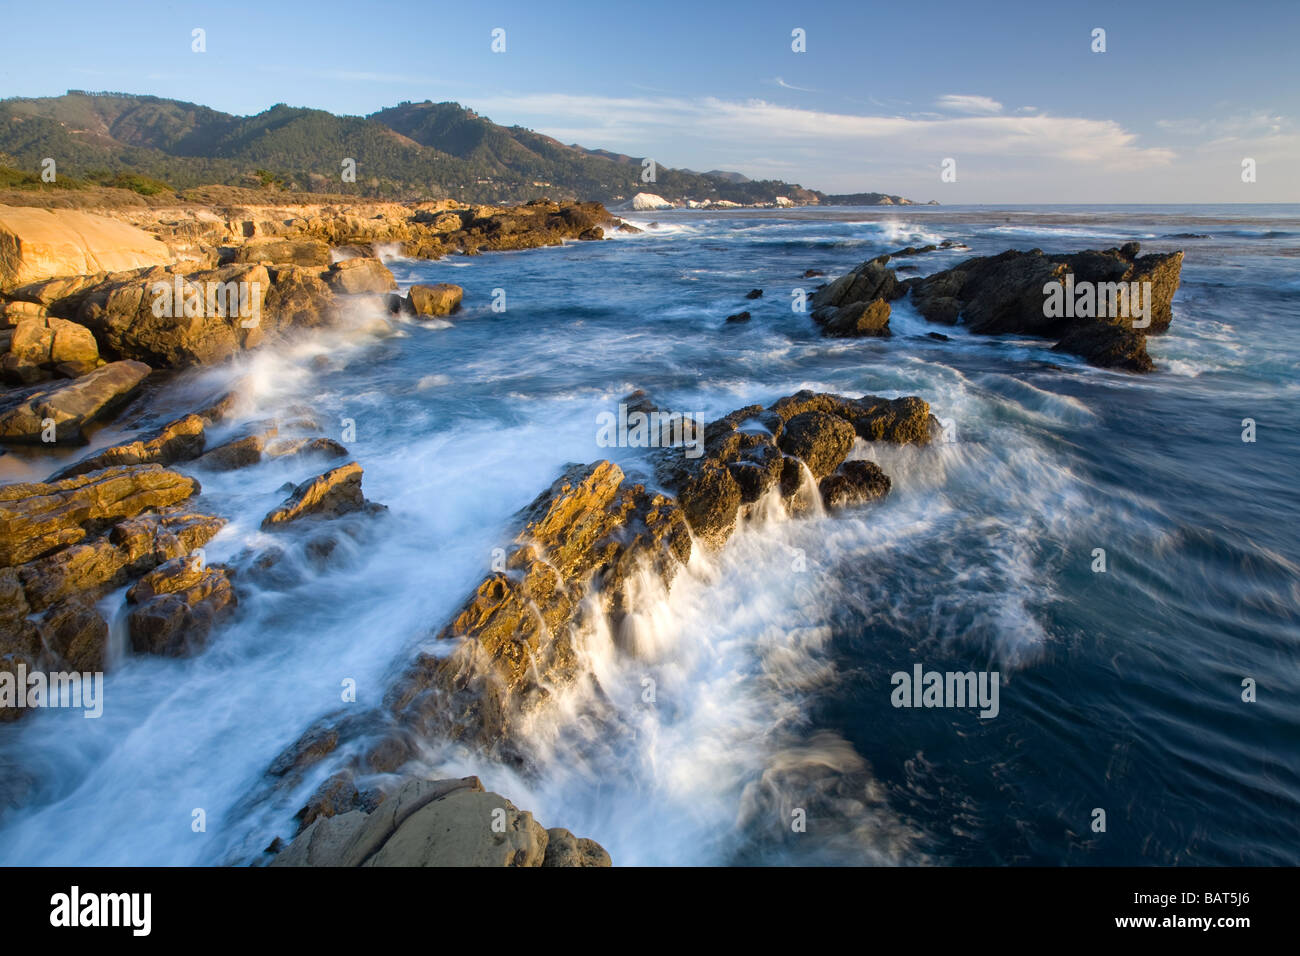 Waves crash along the rocky shores of Point Lobos State Park, CA. - Stock Image